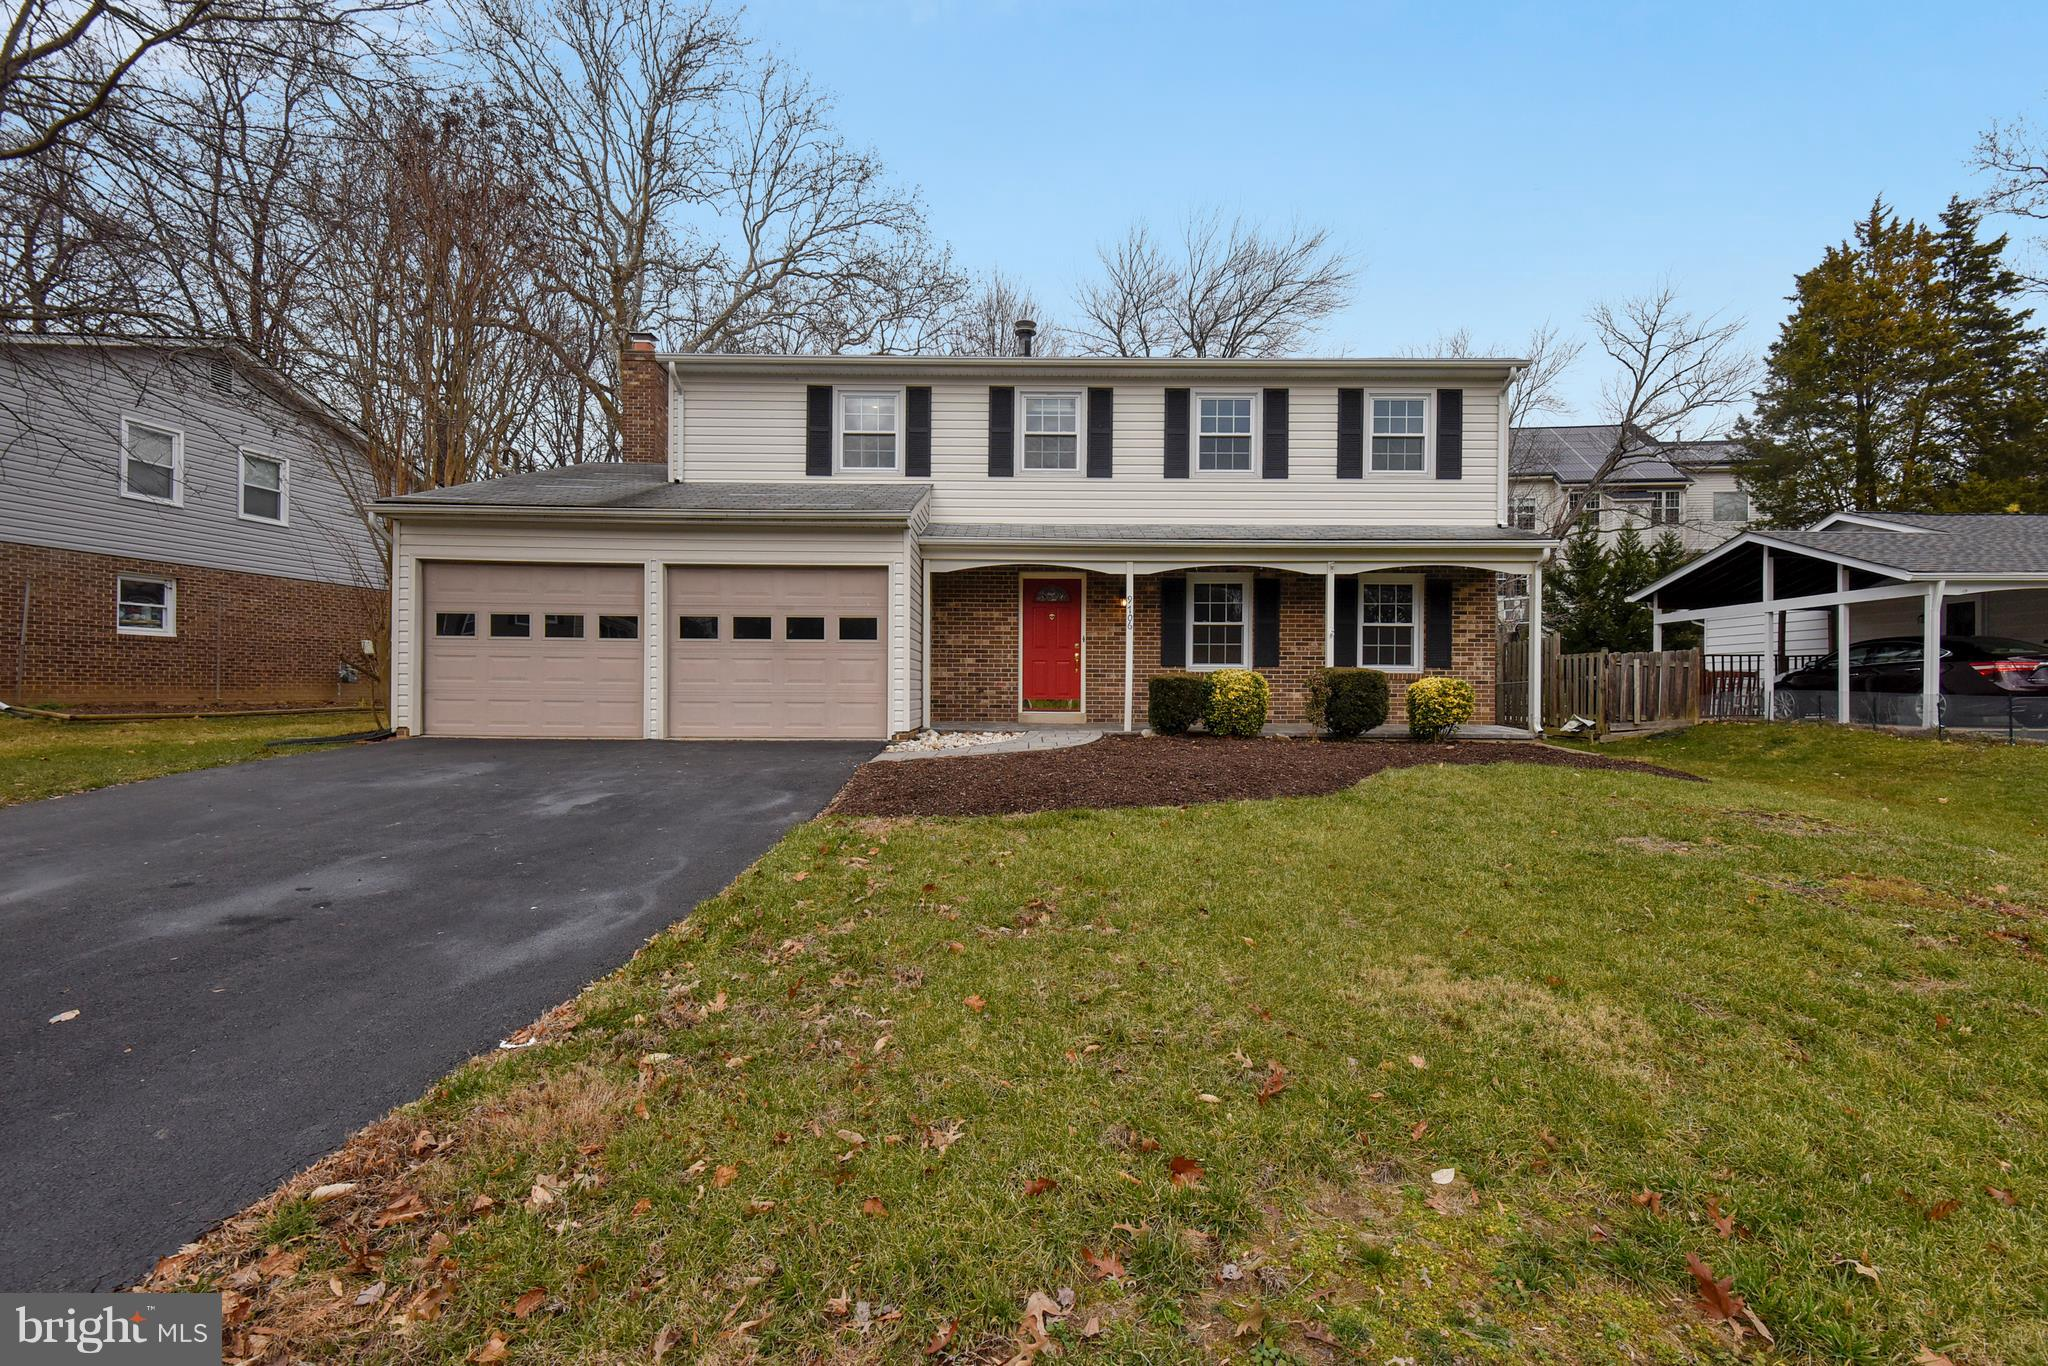 Move -in ready! 4BR/2.5BA Colonial. In outstanding condition, with 2 car garage.  Many upgrades. Basement totally remodeled, wood burning fireplace in the family room.